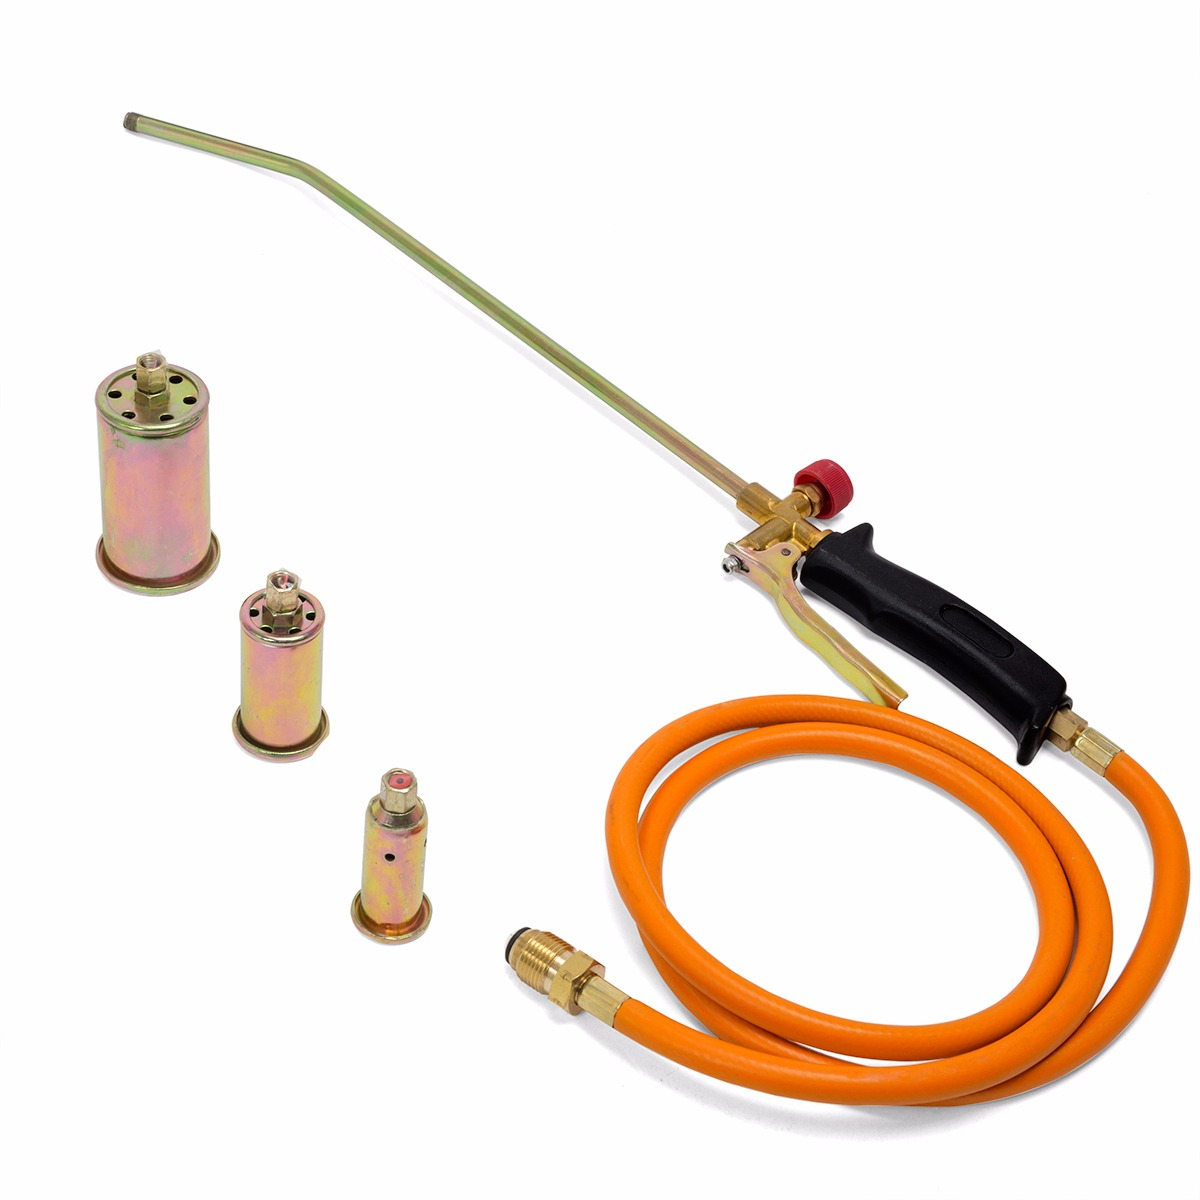 Portable Propane Torch, with 3 Nozzles